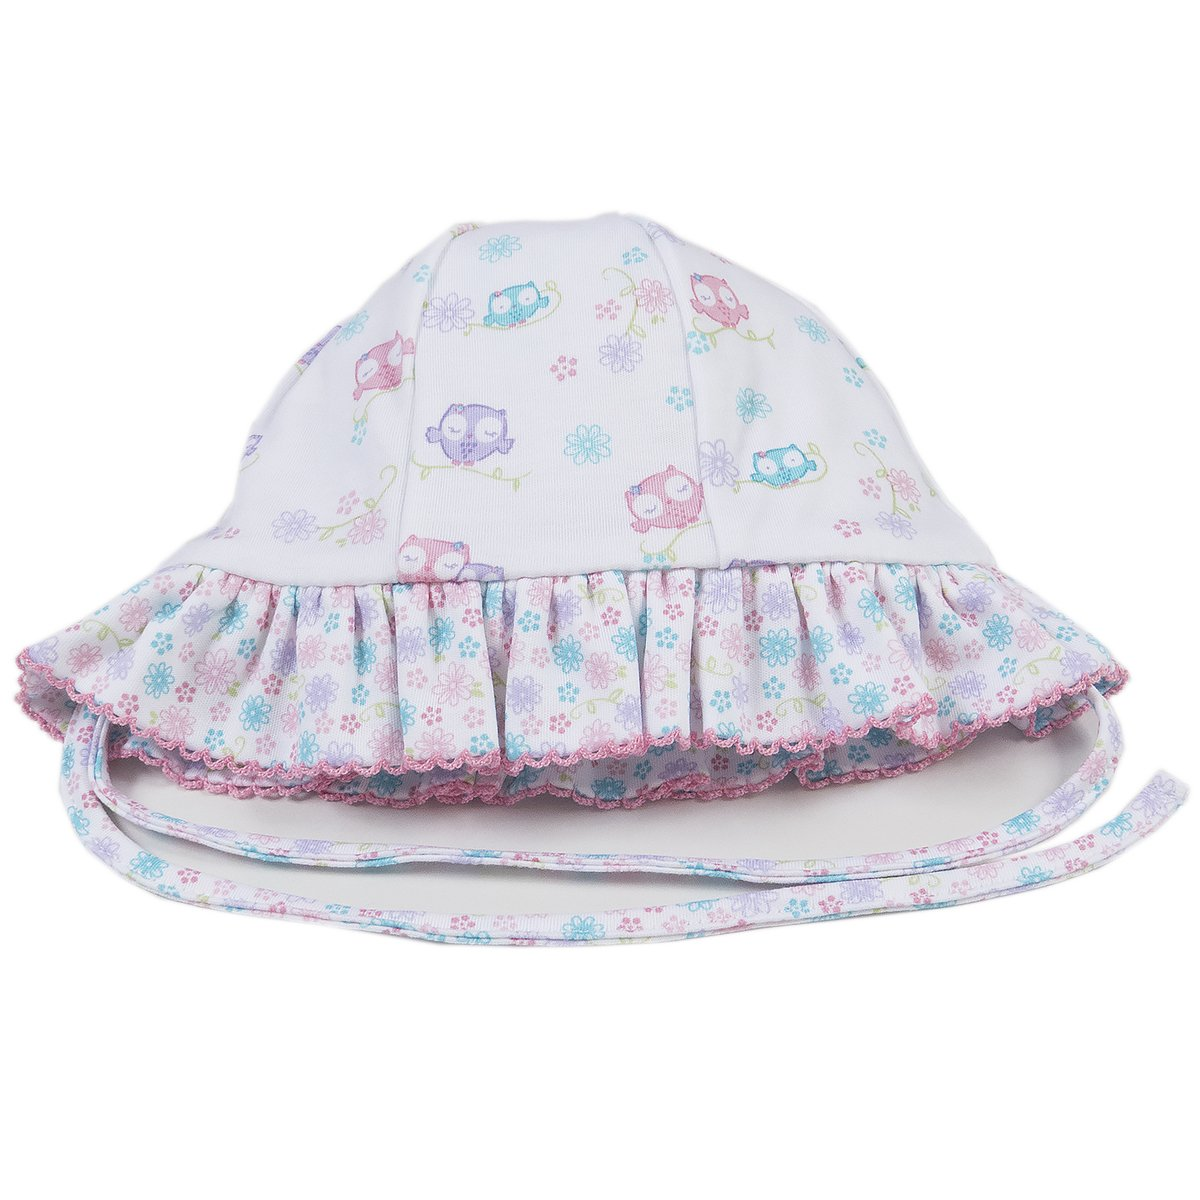 Kissy Kissy Baby Girls What A Hoot Reversible Floppy Hat